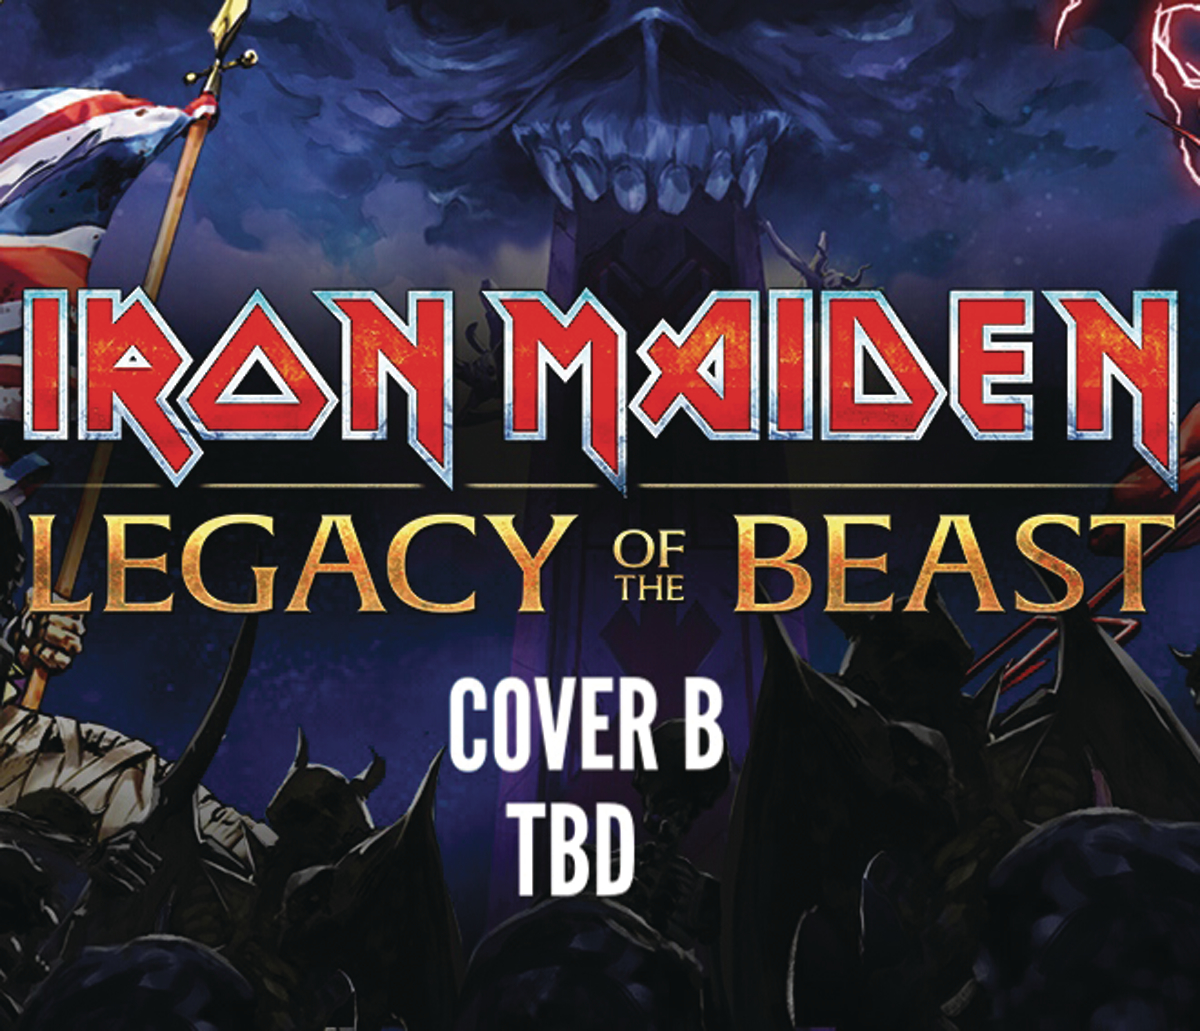 IRON MAIDEN LEGACY OF THE BEAST #5